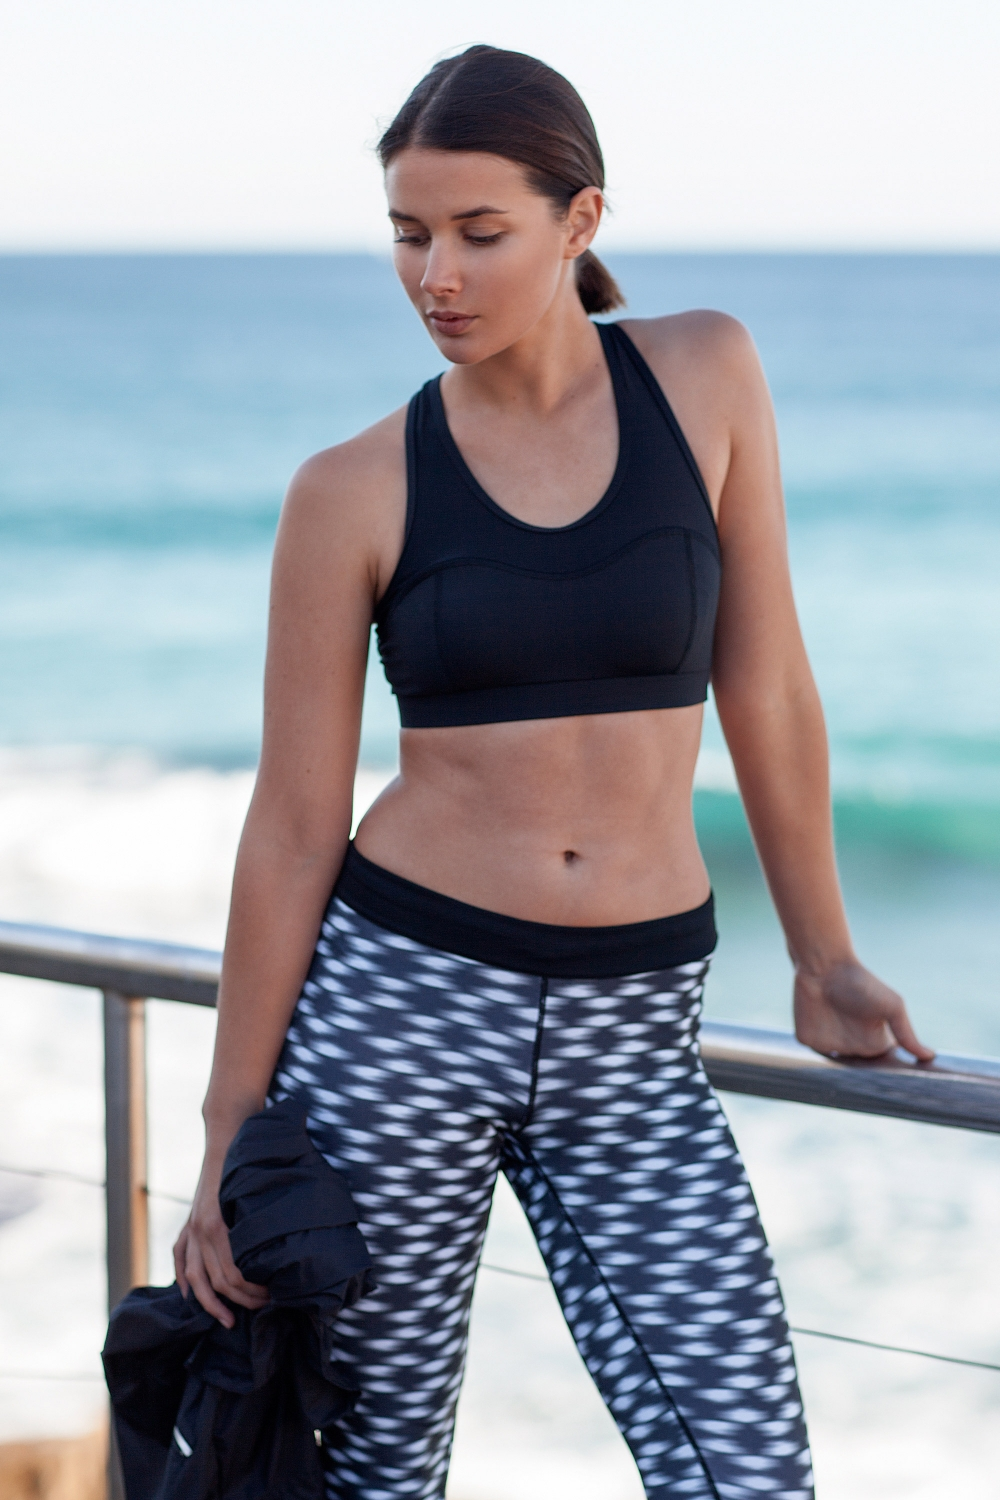 harper-and-harley_sara-donaldson_activewear_health_workout_gym_Running-Bare_Nike_2